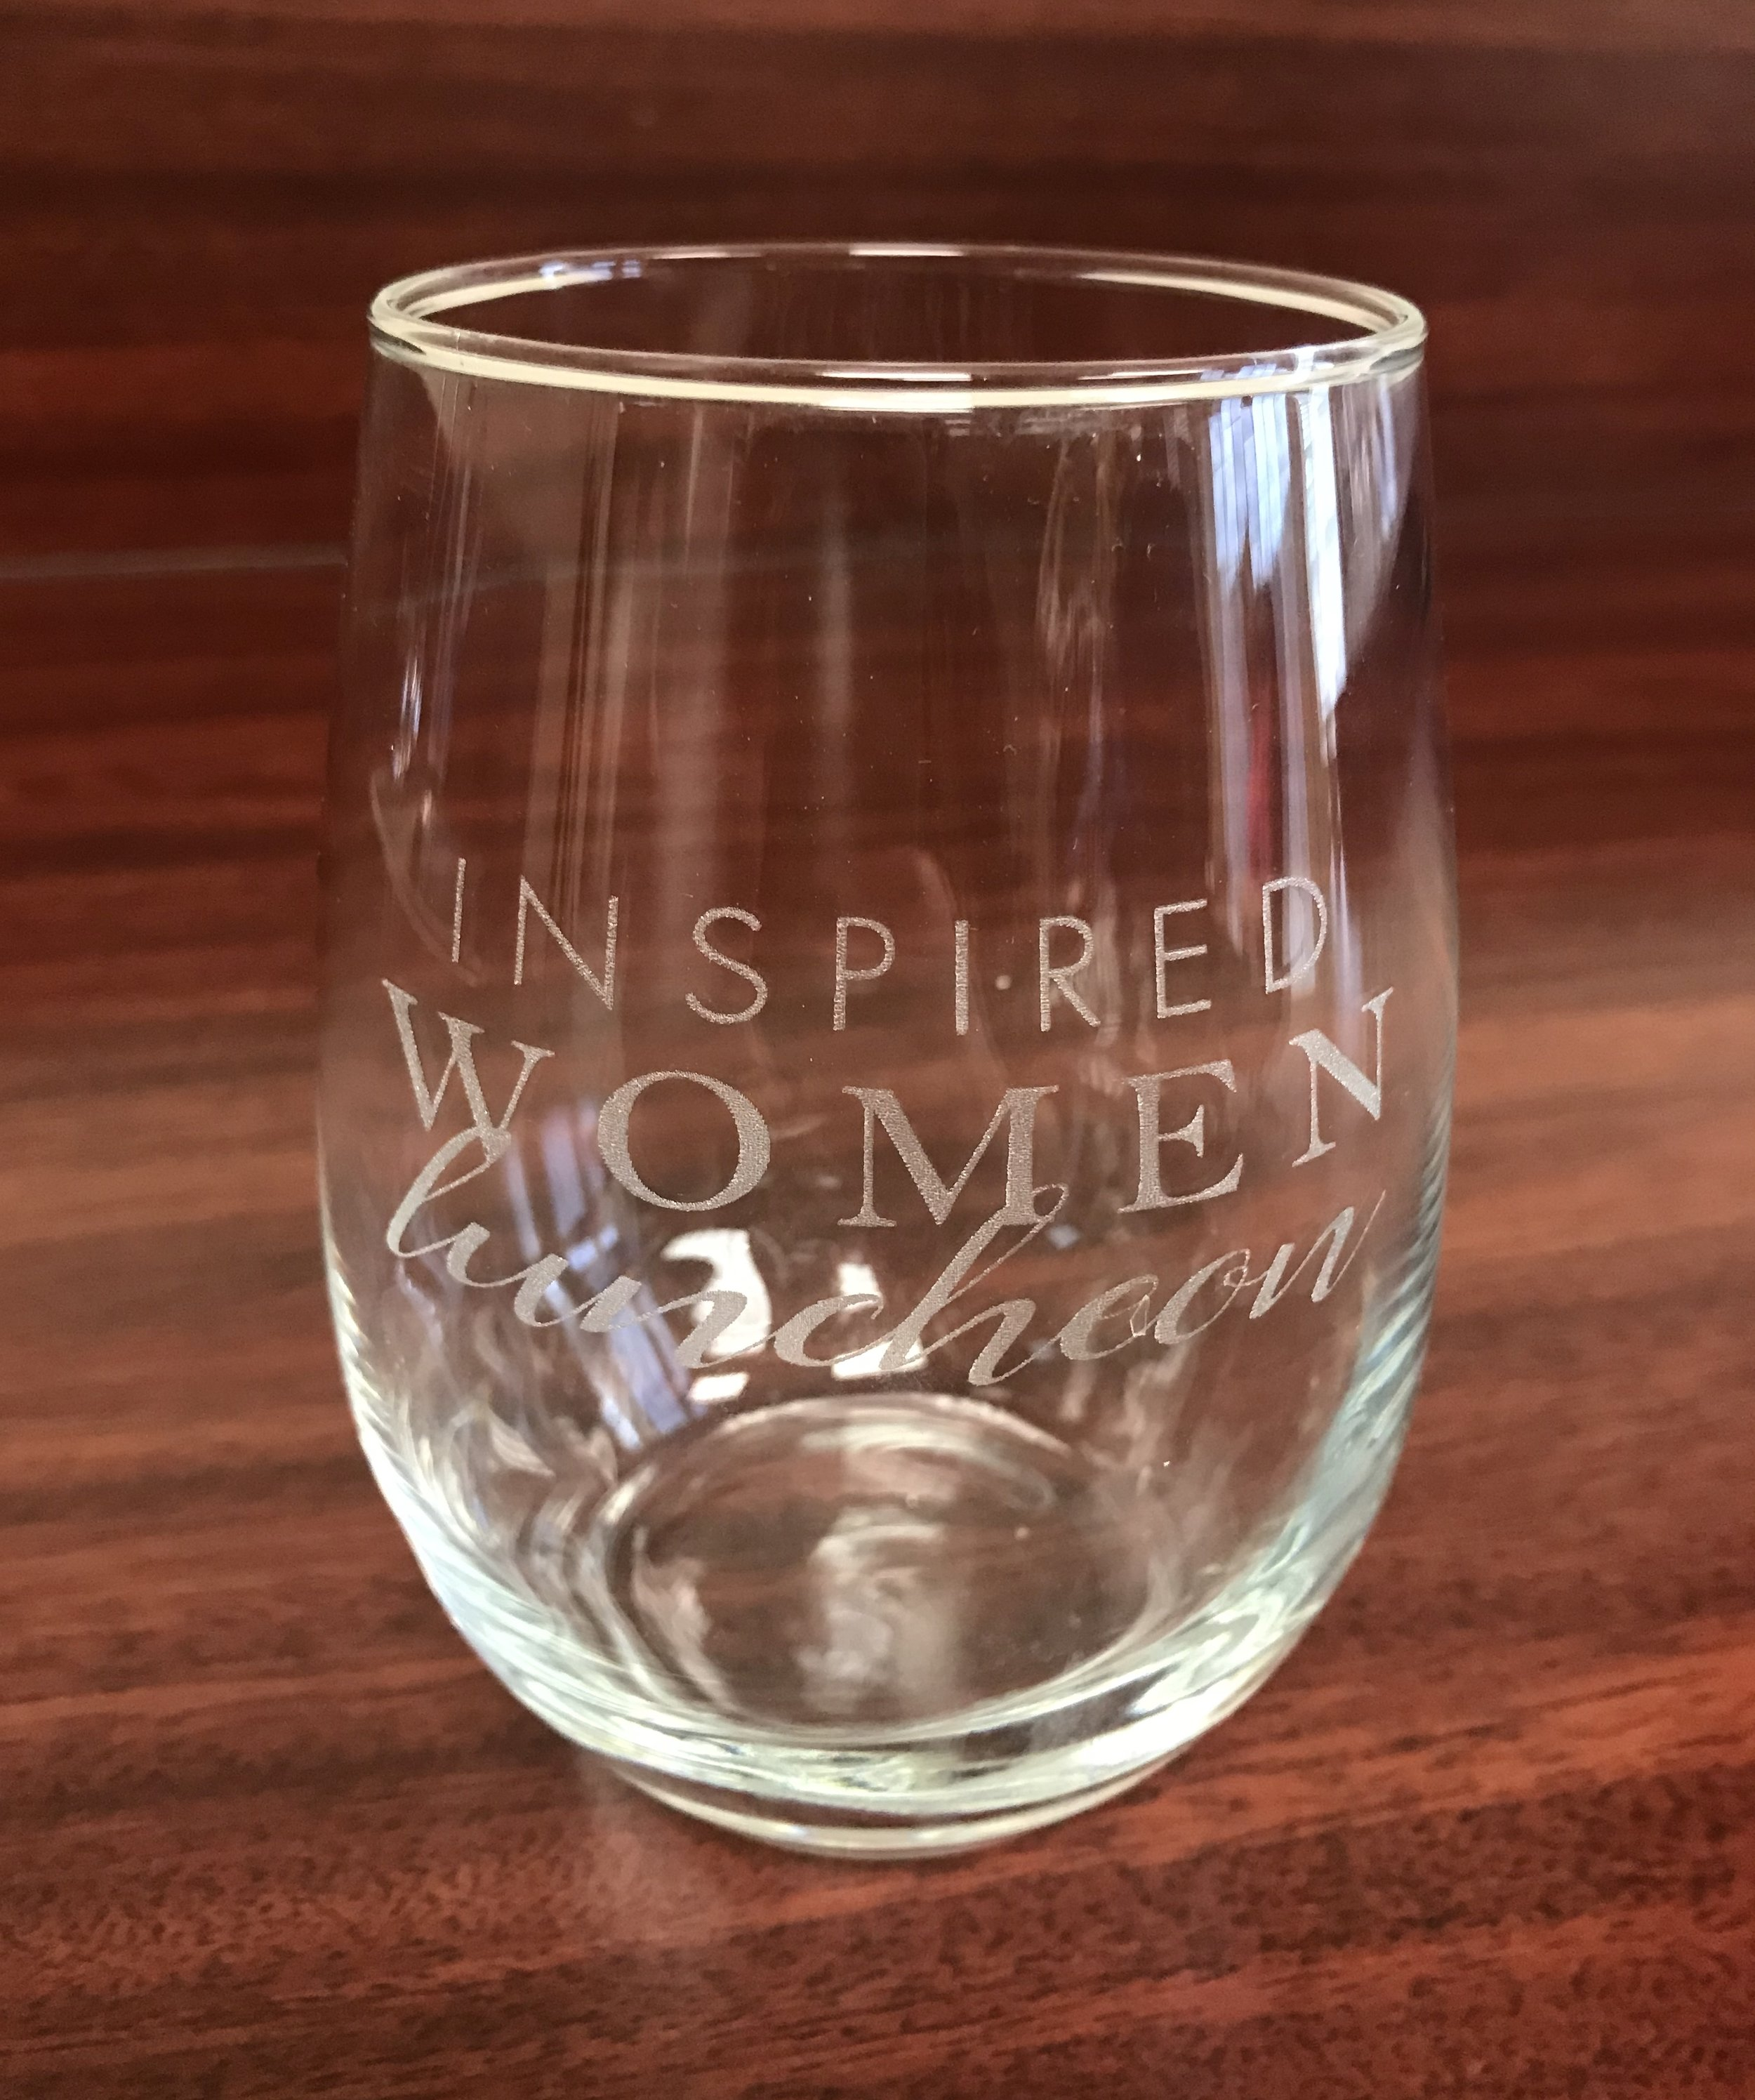 inspired-women-luncheon-2018-1.jpg